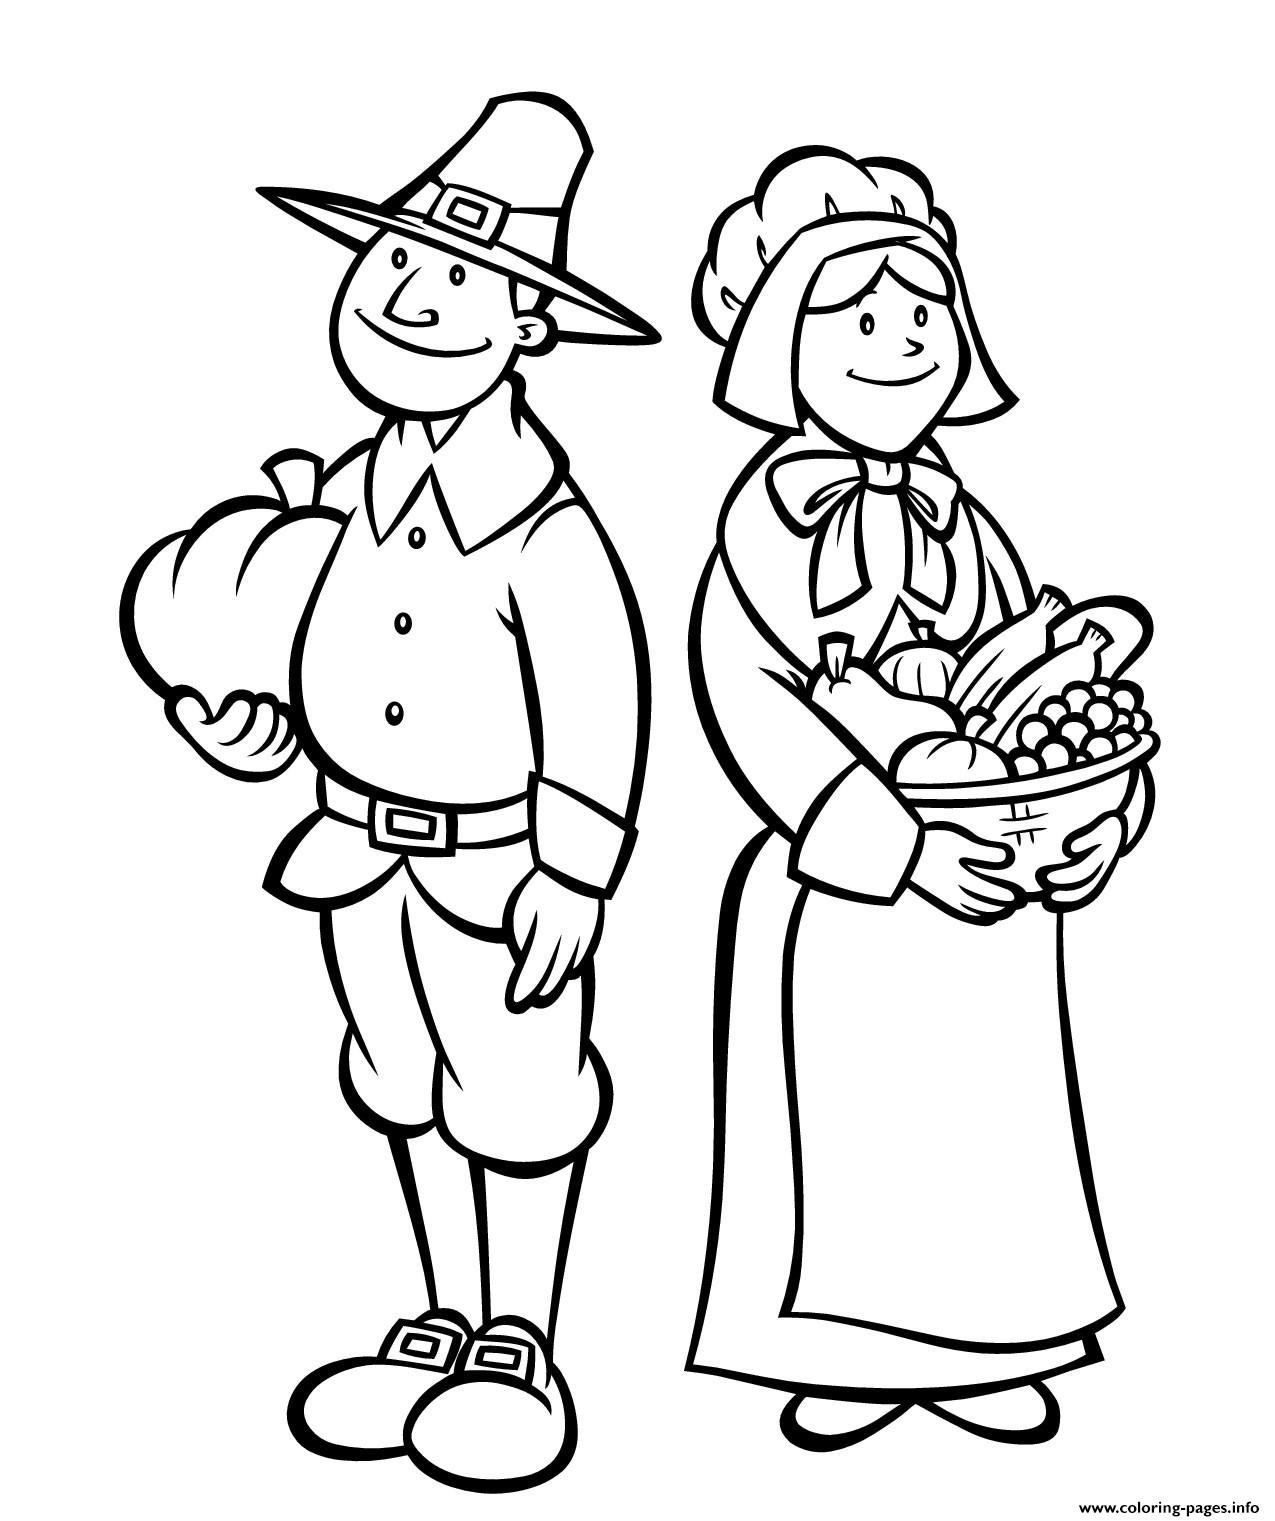 Printable Thanksgiving S Pilgrimsc506 coloring pages